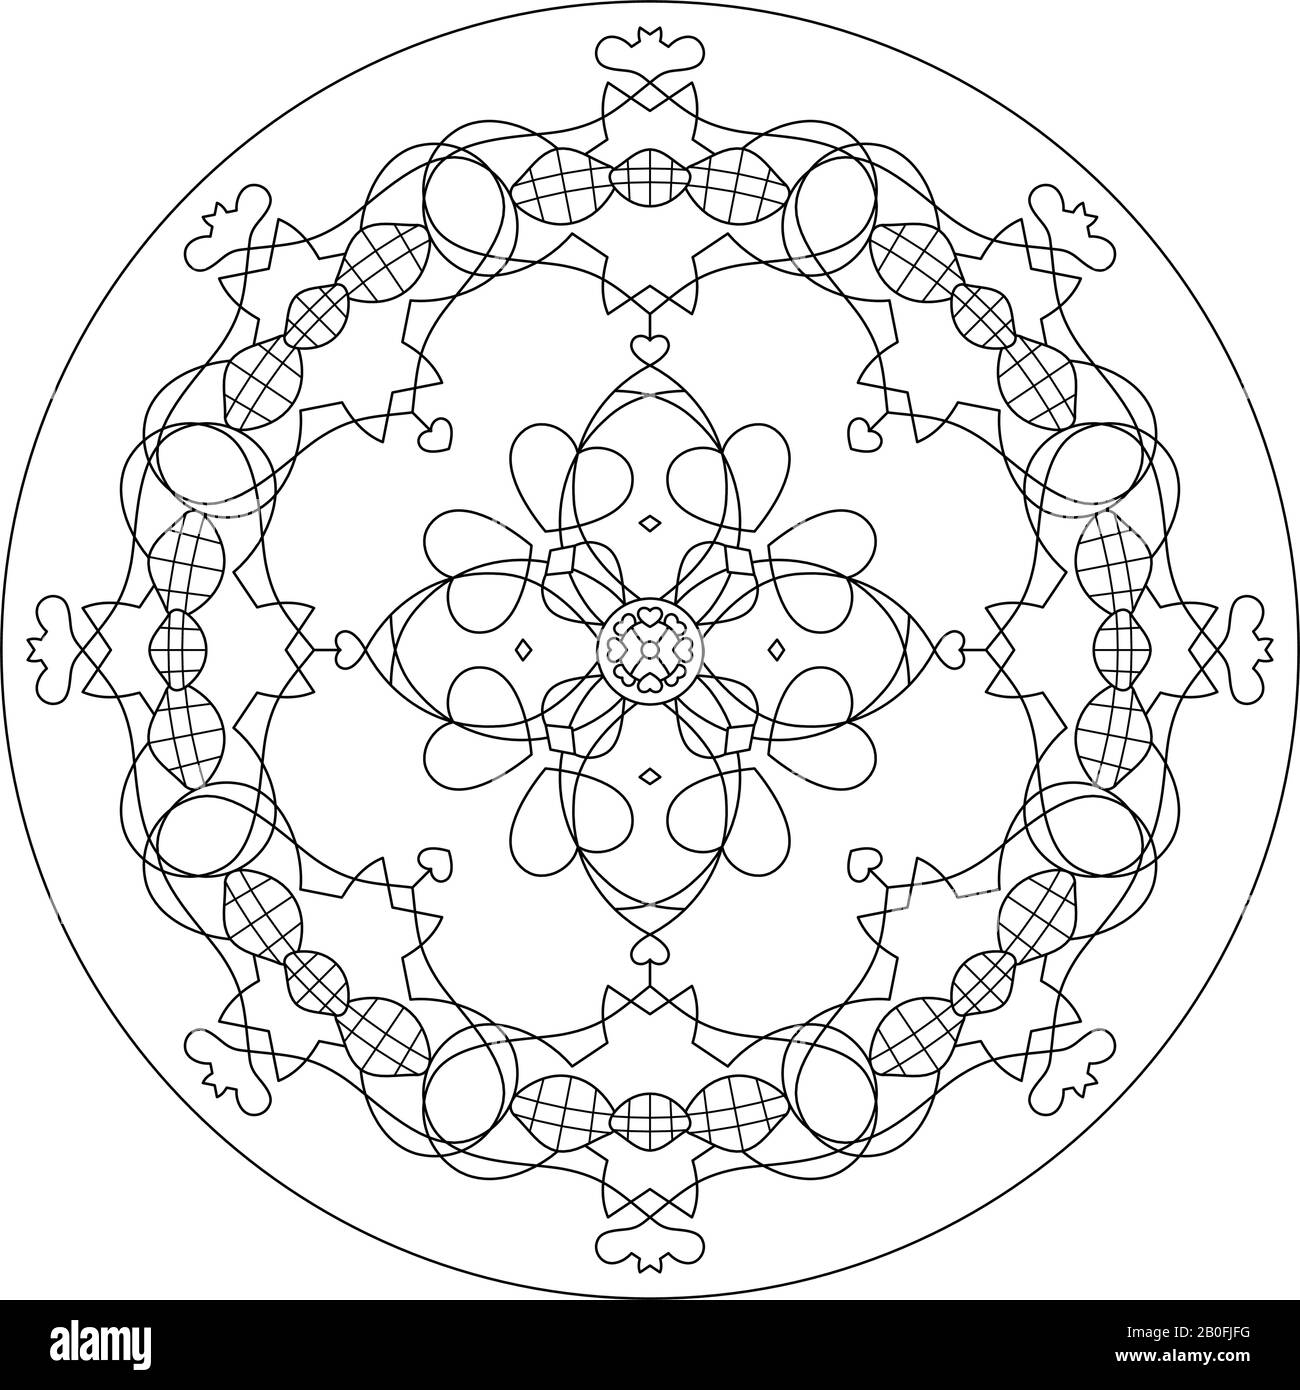 Anti-stress coloring for adults. Art therapy | Coloring pages ... | 1390x1300